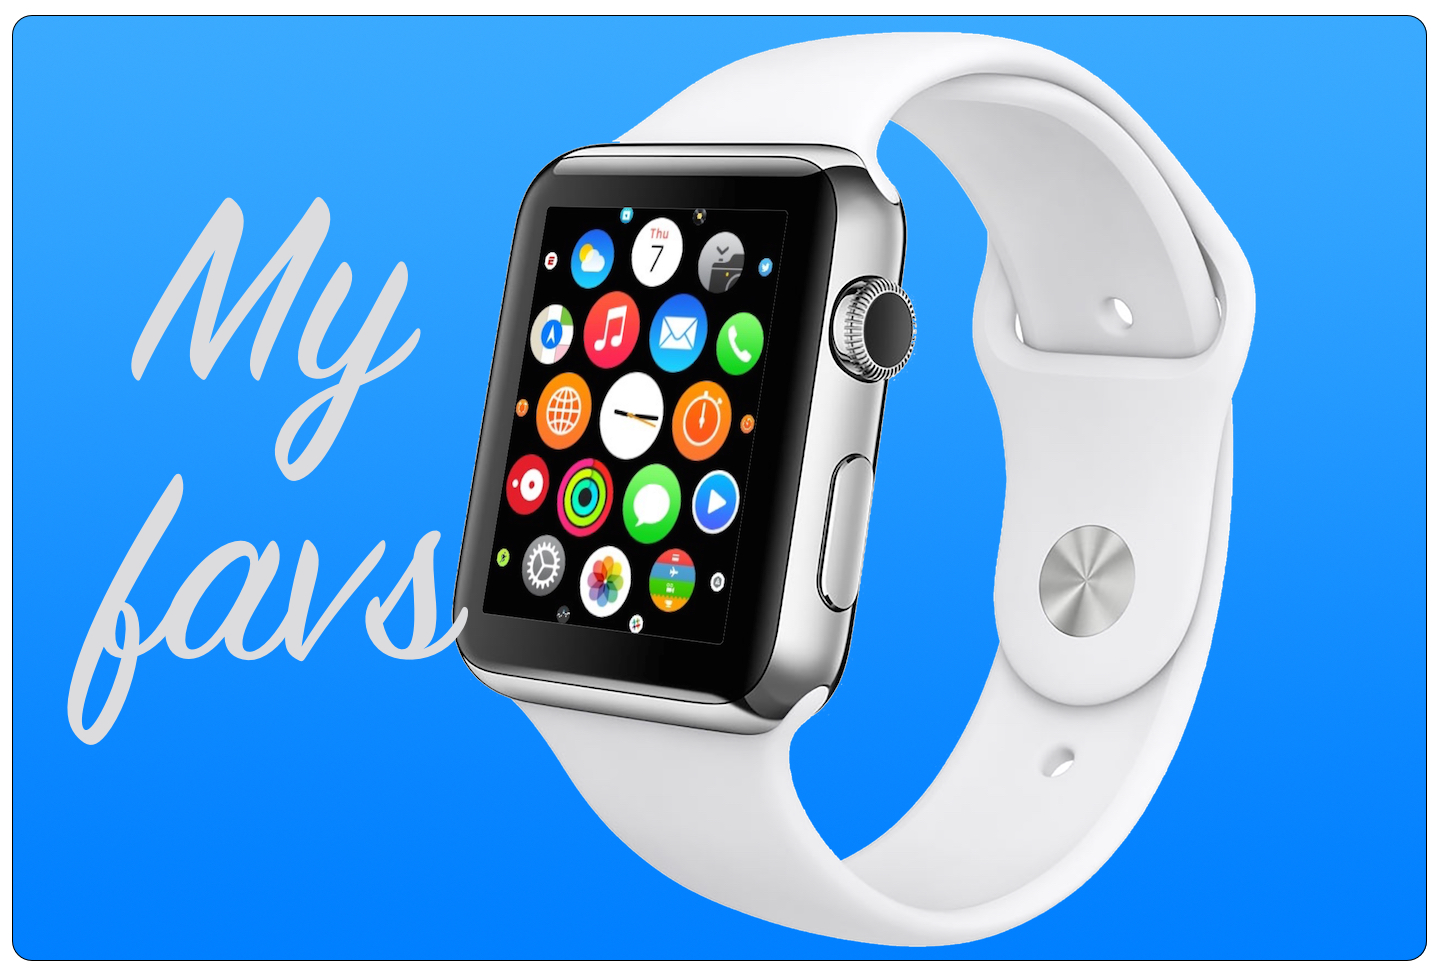 My favorite Apple Watch apps this week include Shazam, Deliveries and Yelp